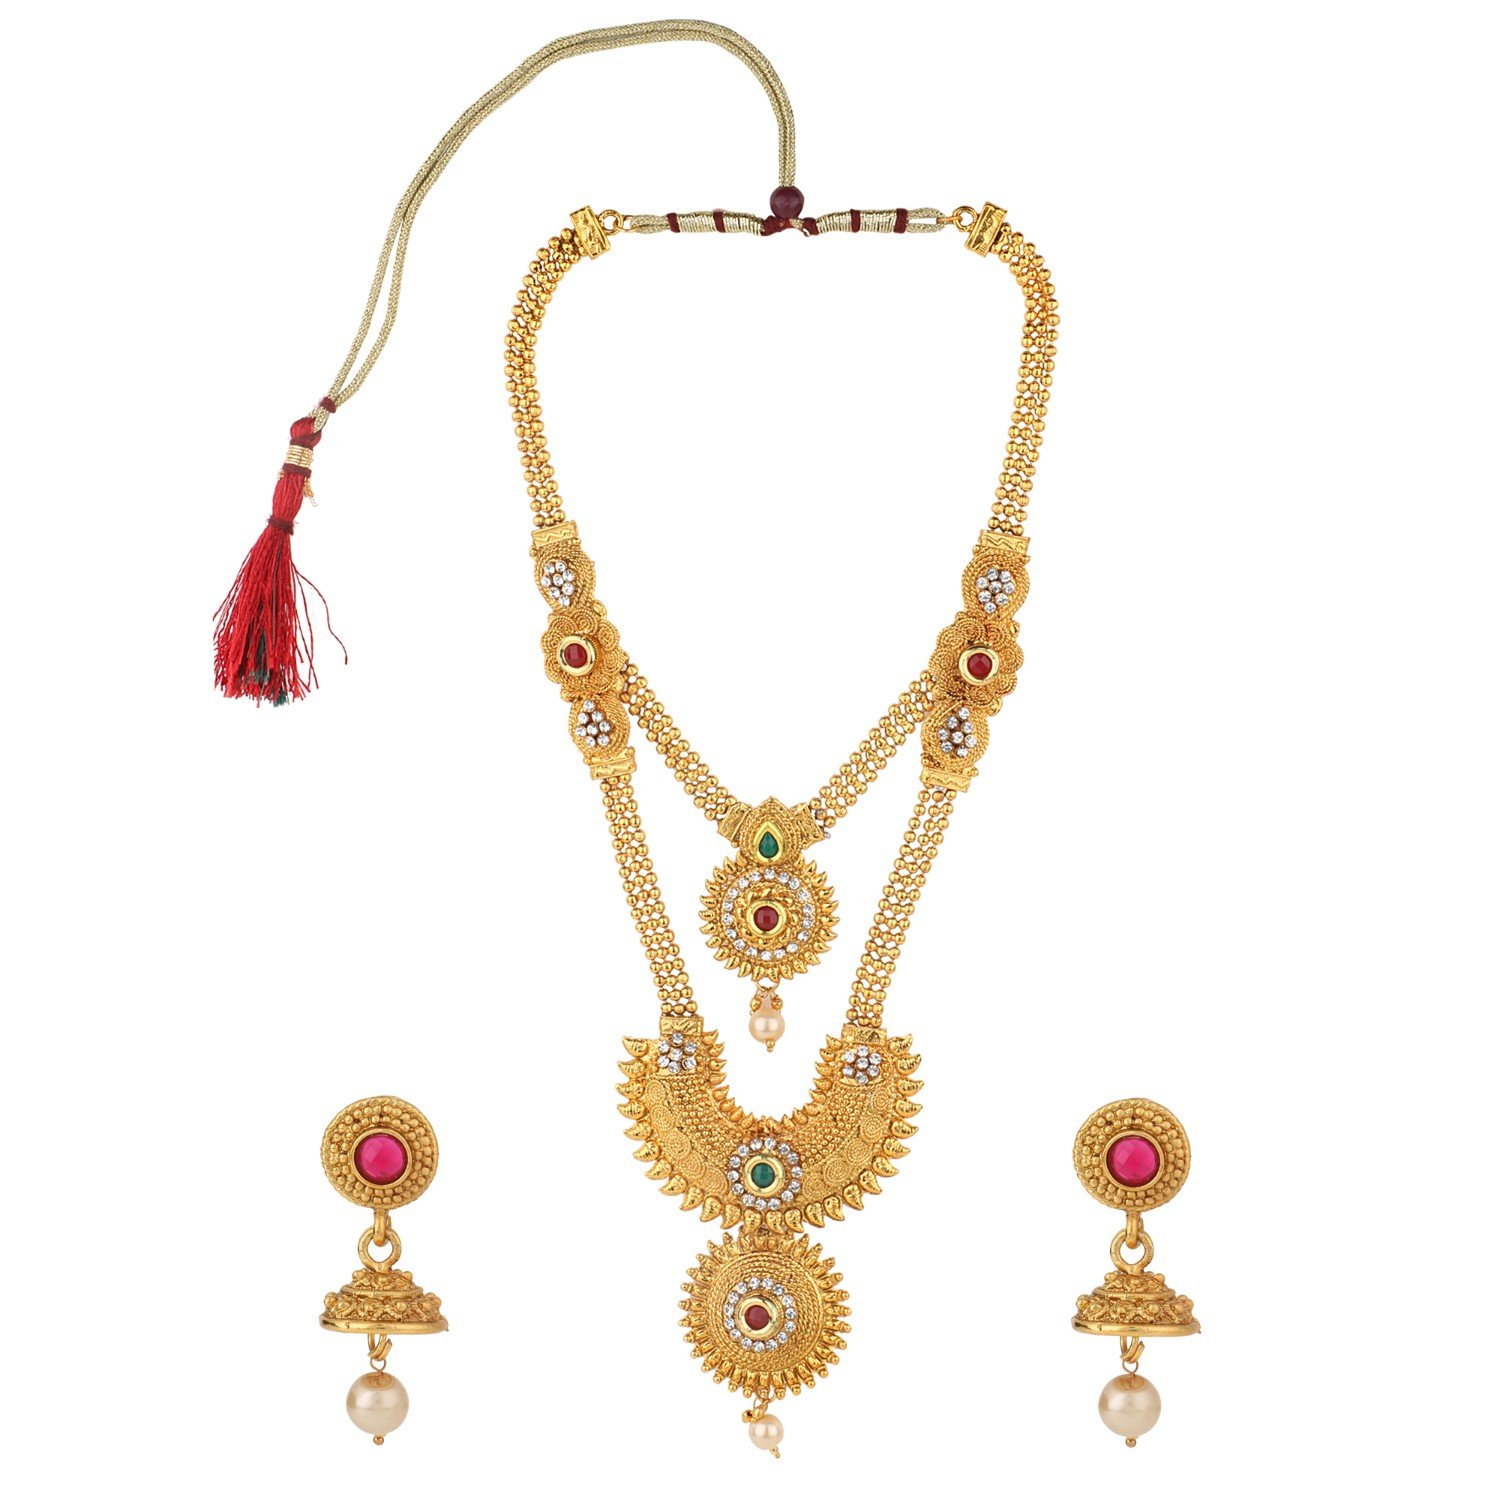 Efulgenz Indian Bollywood Traditional White Red Green Rhinestone Faceted Round Shape Faux Ruby Emerald Heavy Bridal Designer Jewelry Necklace Set in Antique 18K Gold Tone for Women and Girls